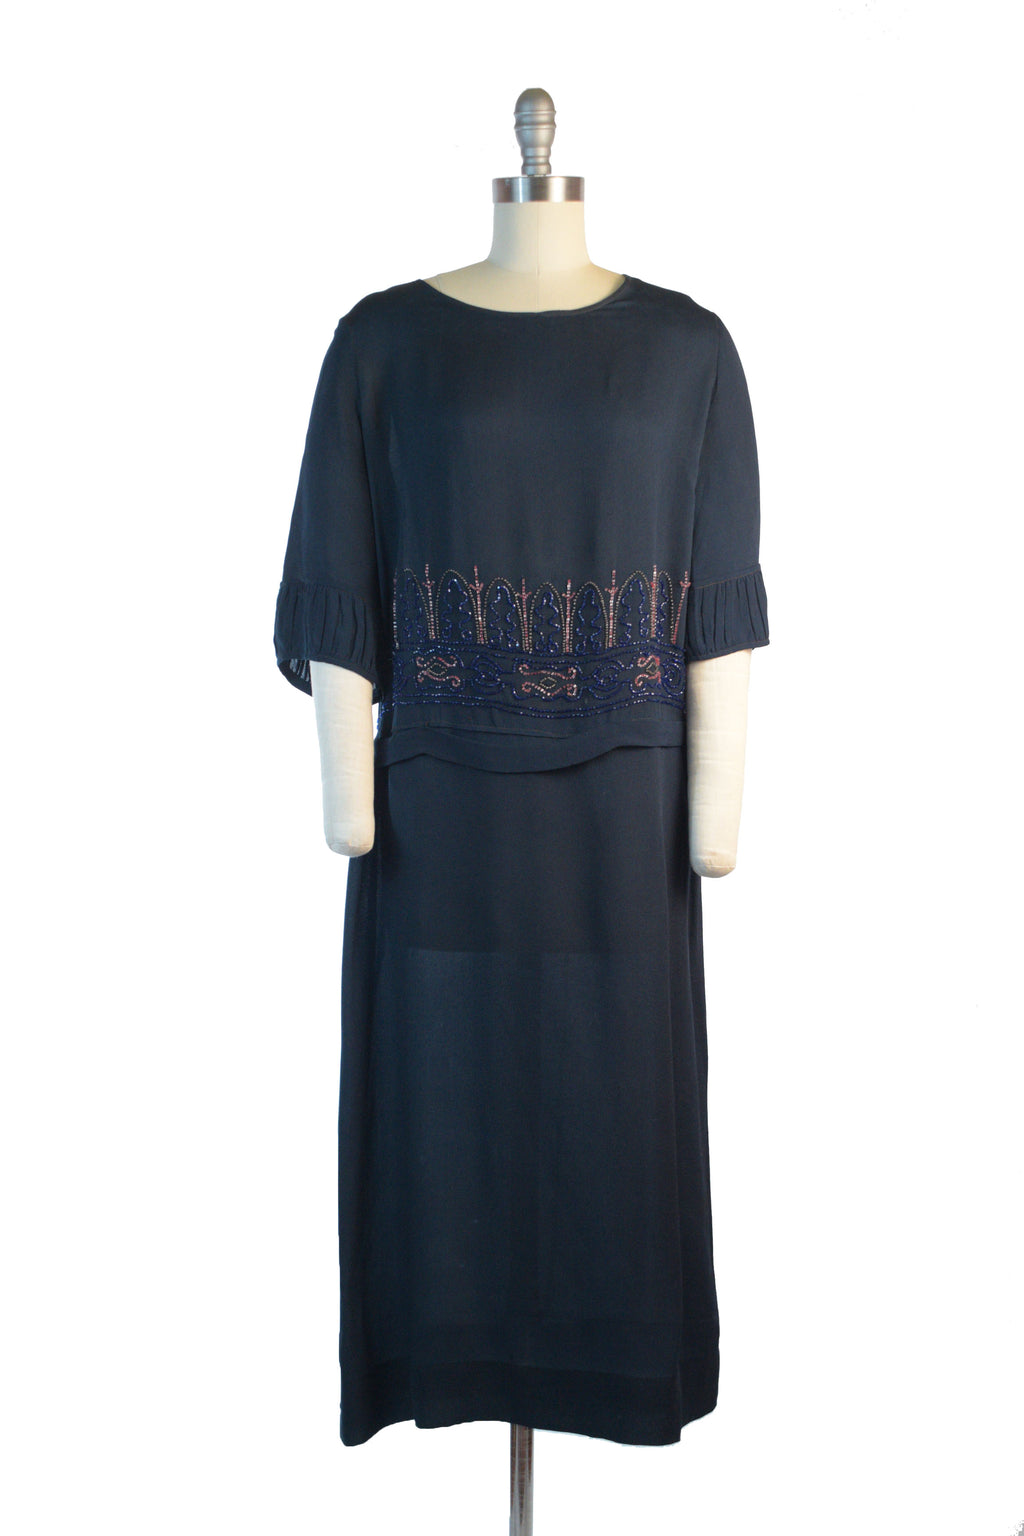 Lovely Early 1920s Navy Blue Silk Crepe Day Dress with Beaded Bodice and Slightly Dropped Waist